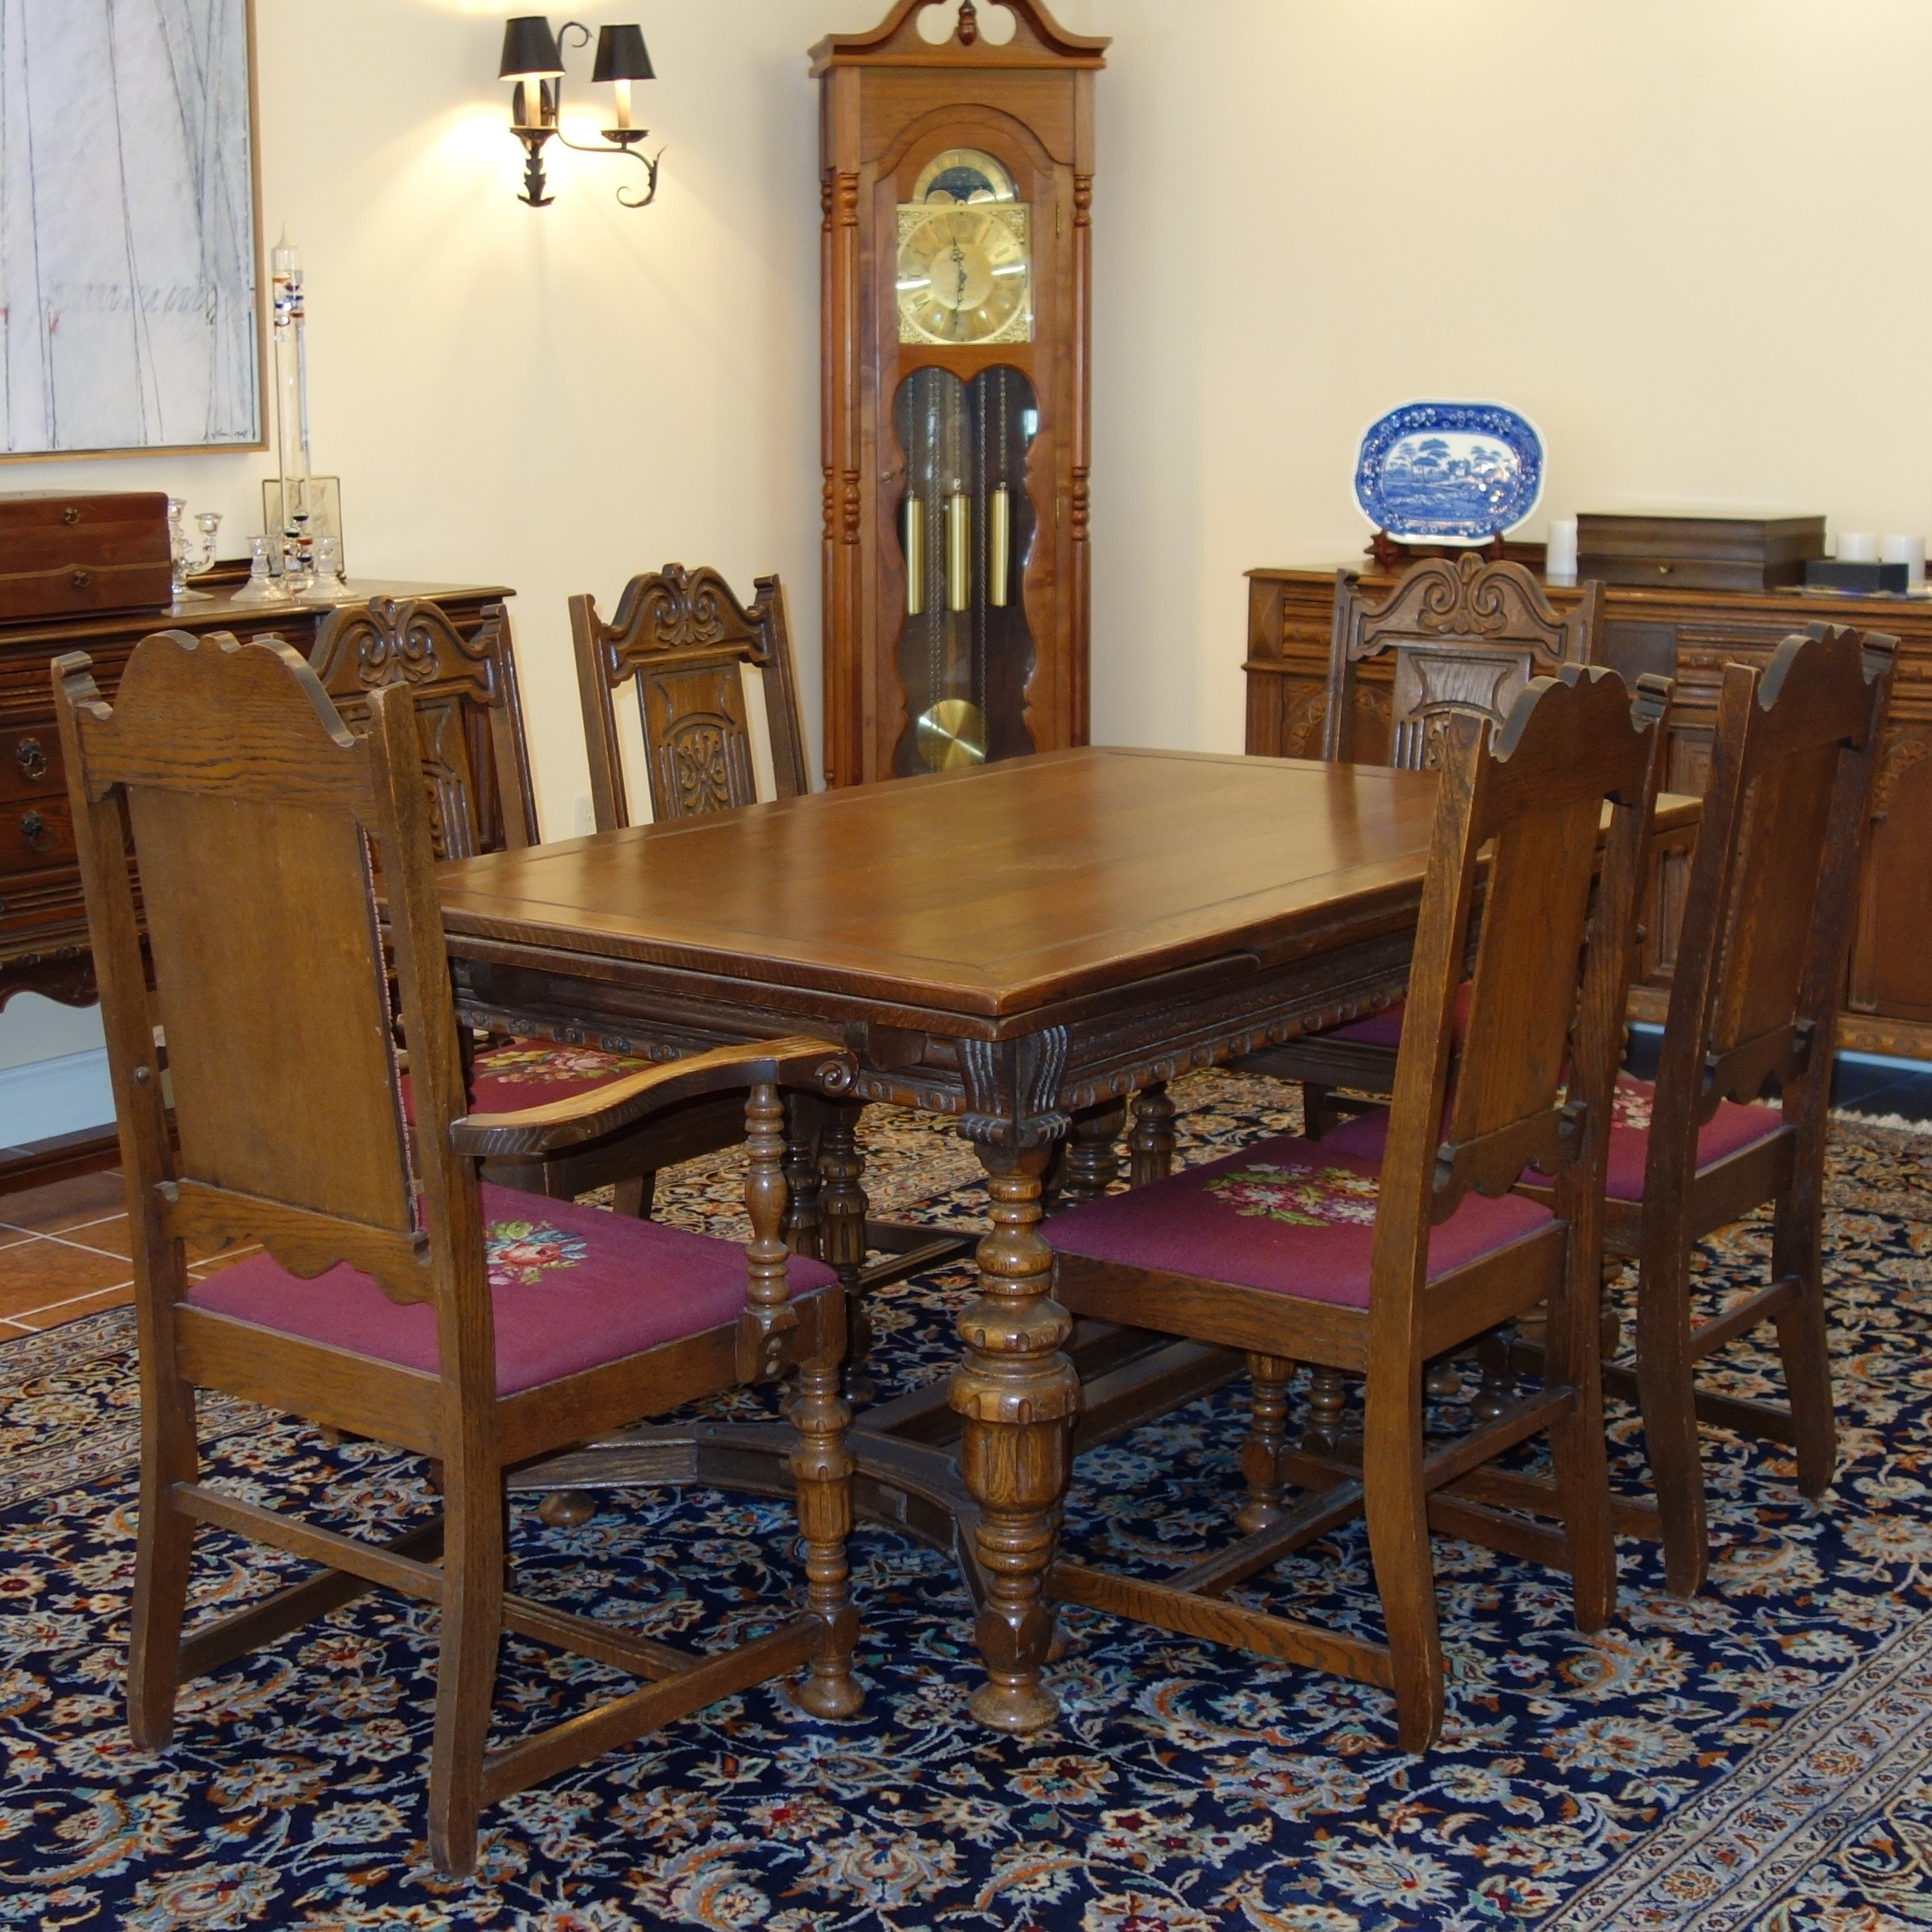 English Renaissance Revival Oak Table and Six Chairs